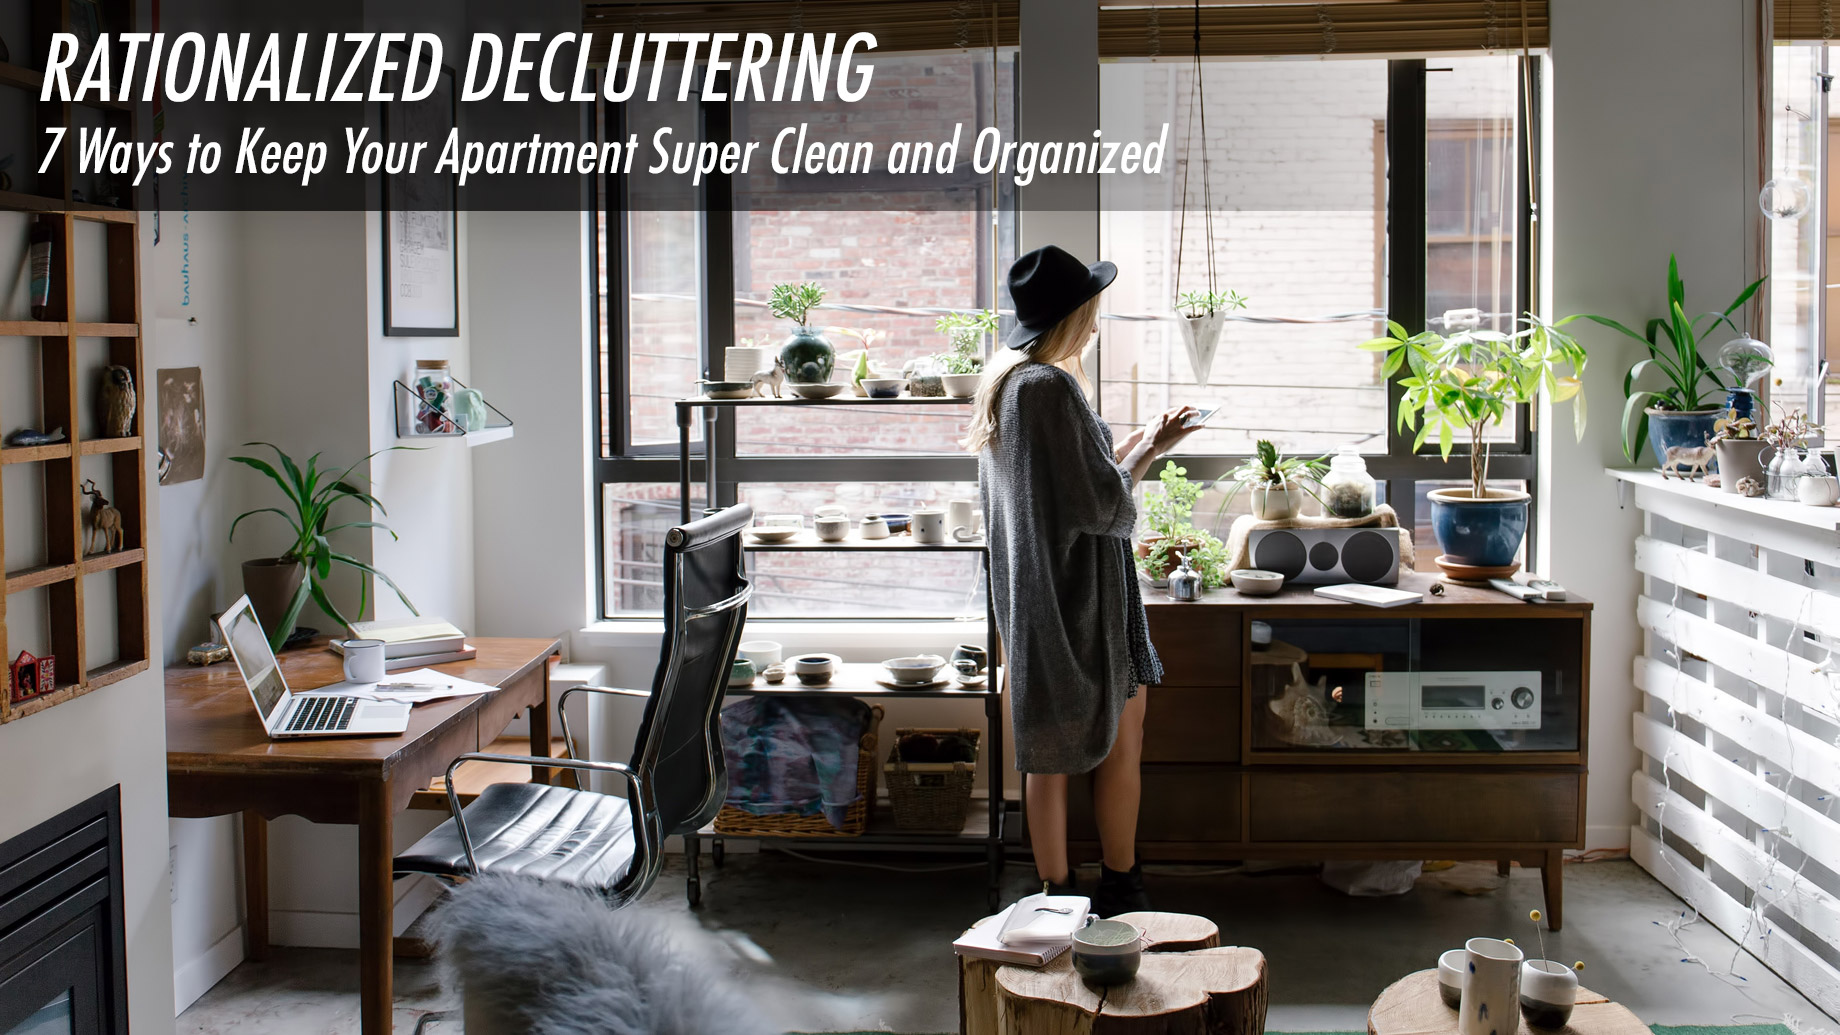 Rationalized Decluttering - 7 Ways to Keep Your Apartment Super Clean and Organized